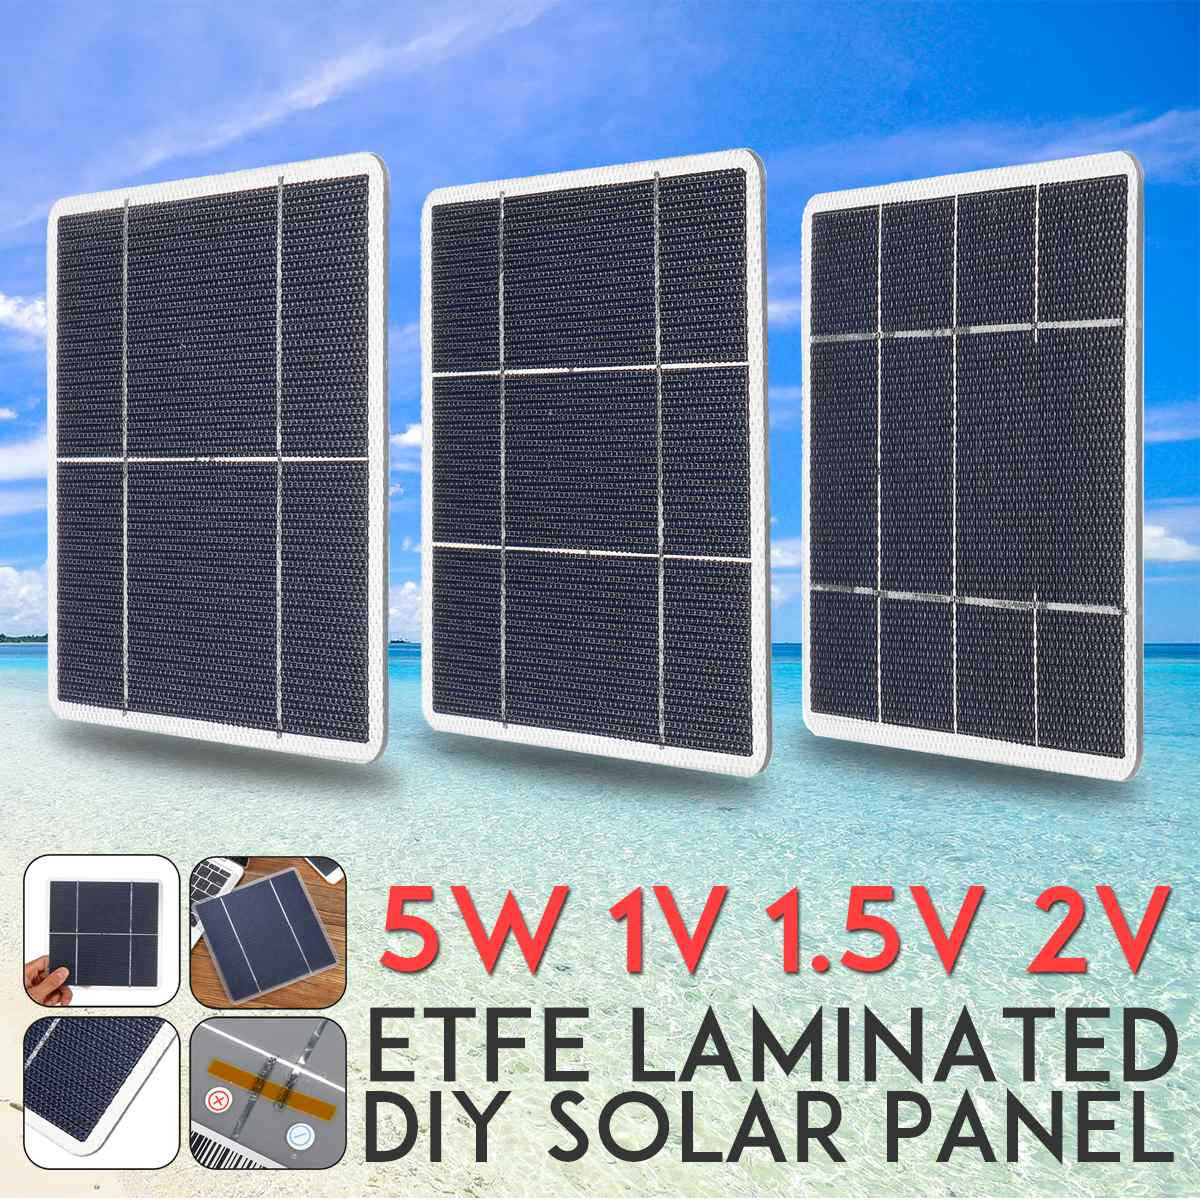 LEORY 5W 170x170mm DIY Monocrystalline Solar Panel ETFE laminated Mono Silicon Cells Photovoltaic Grade A High Efficiency image